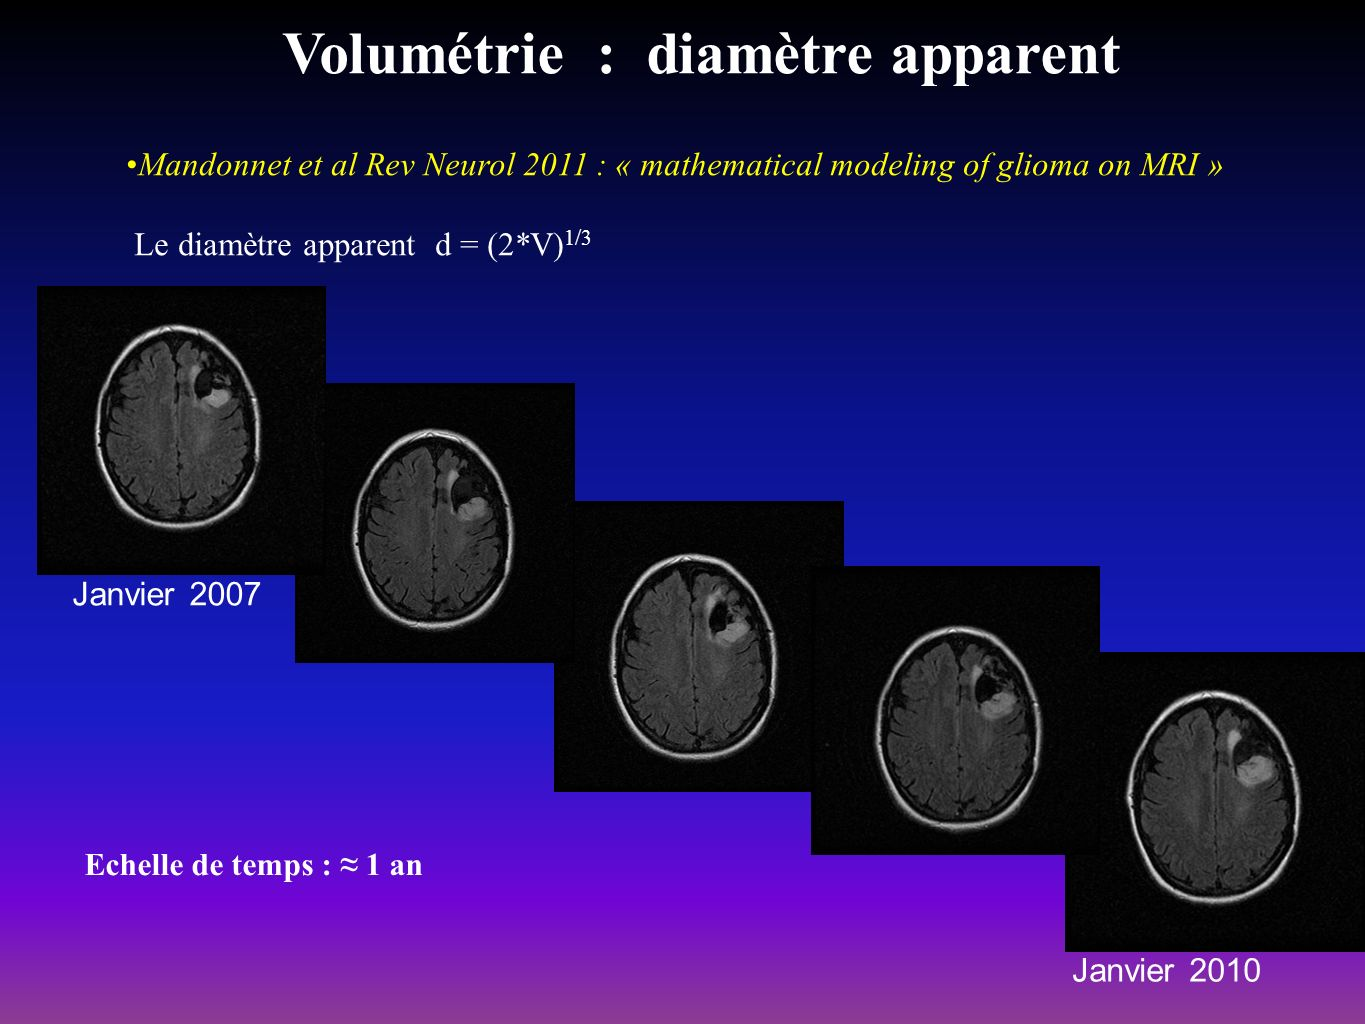 Volumétrie : diamètre apparent